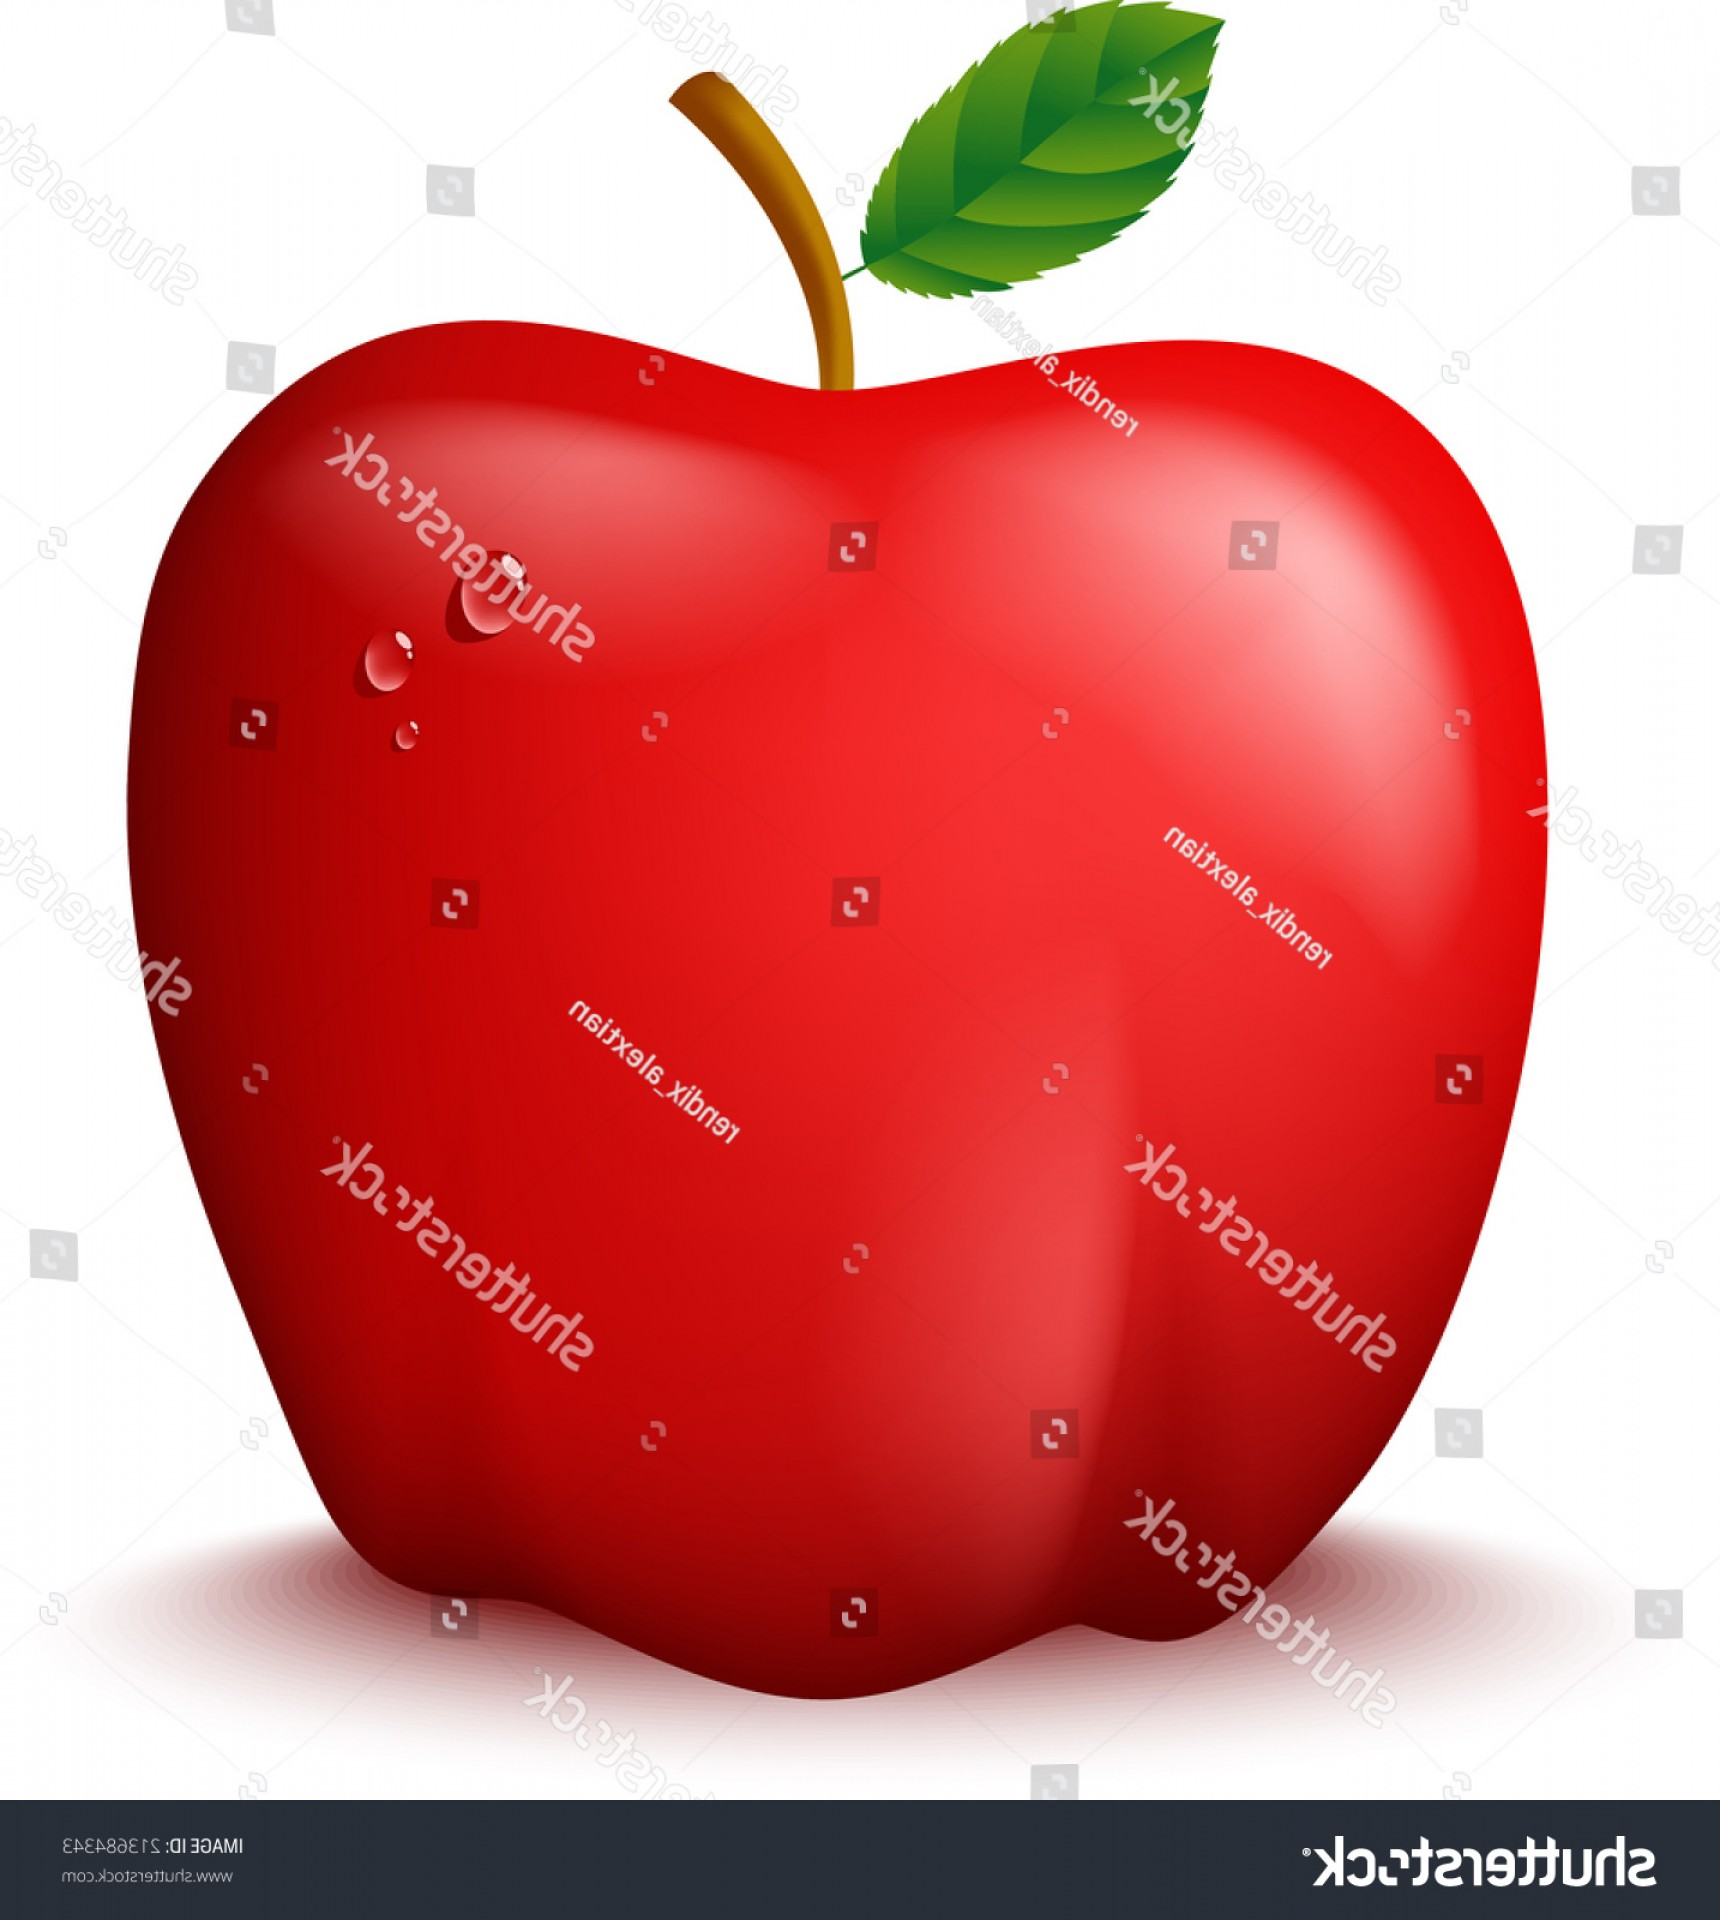 Red Apple Vector Logo: Fresh Red Apple Vector Illustration